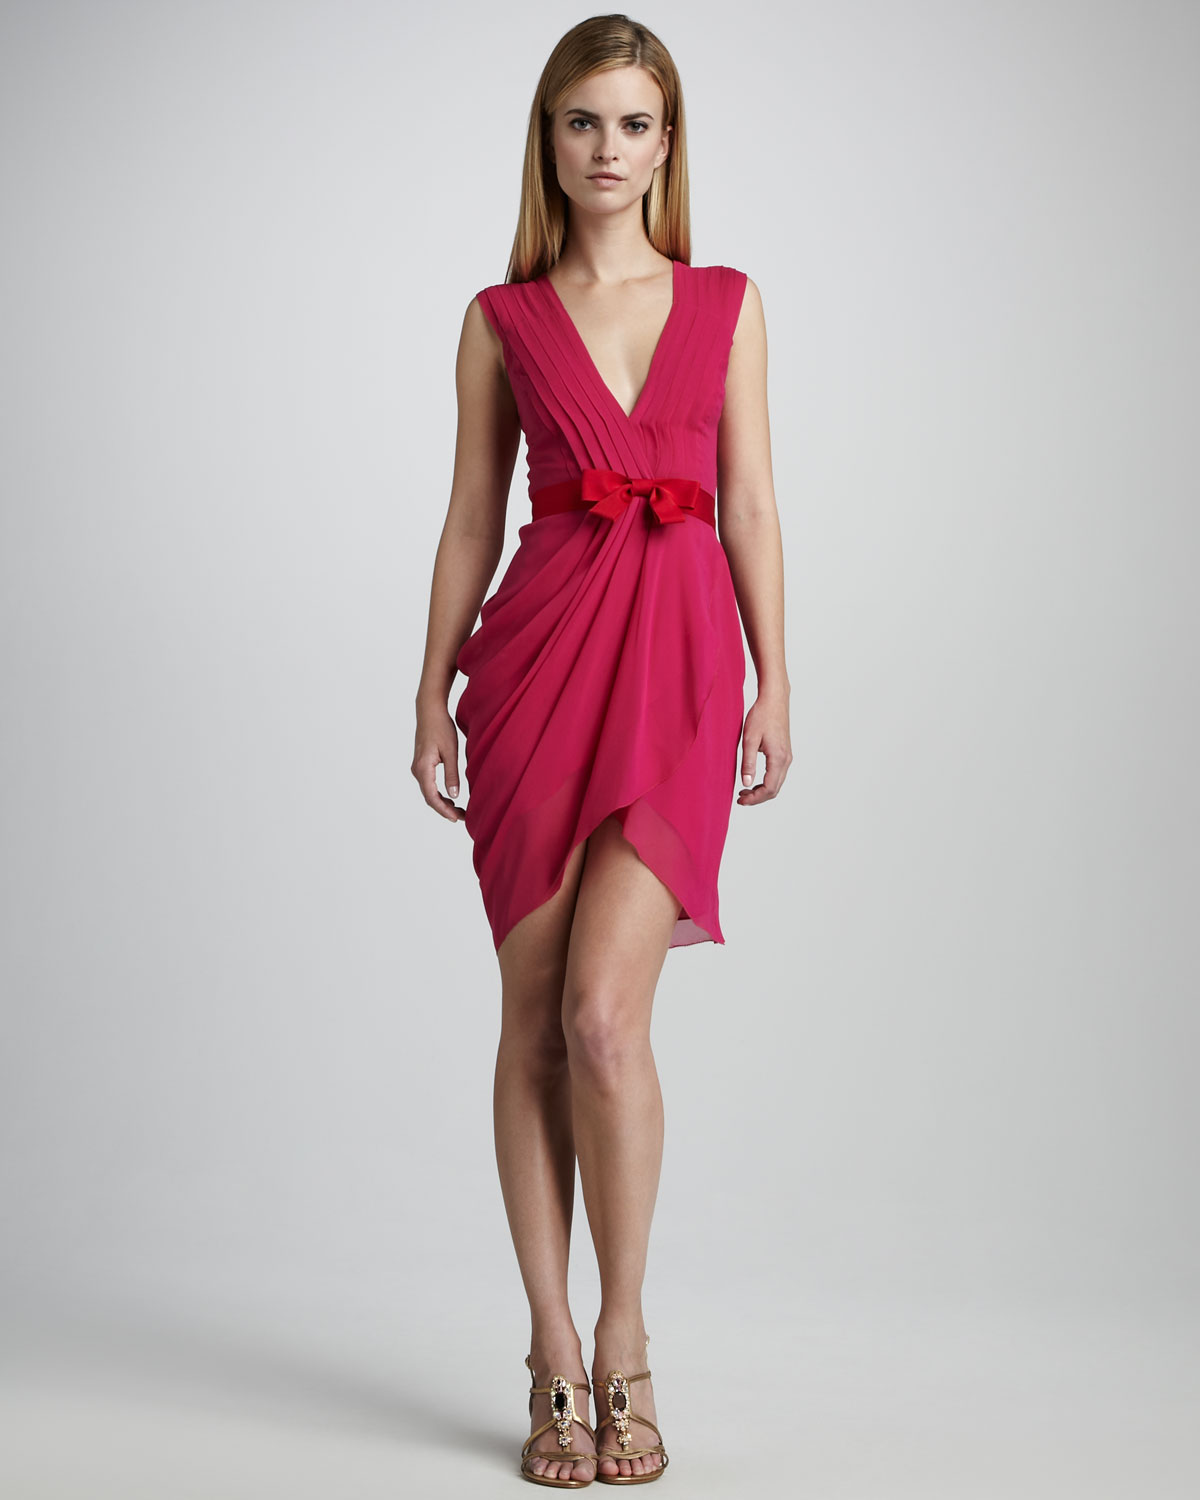 Lyst - Vera Wang Lavender Draped Fitted Cocktail Dress in Pink